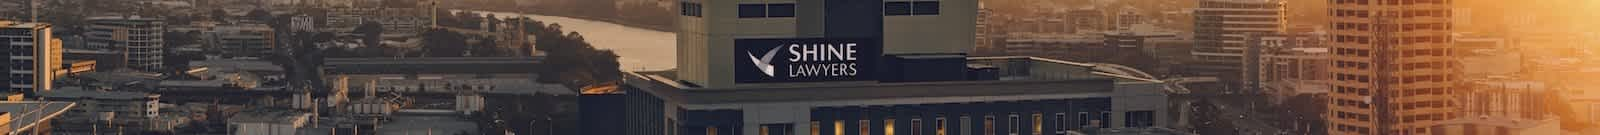 Shine Lawyers | professional negligence law | Shine Lawyers